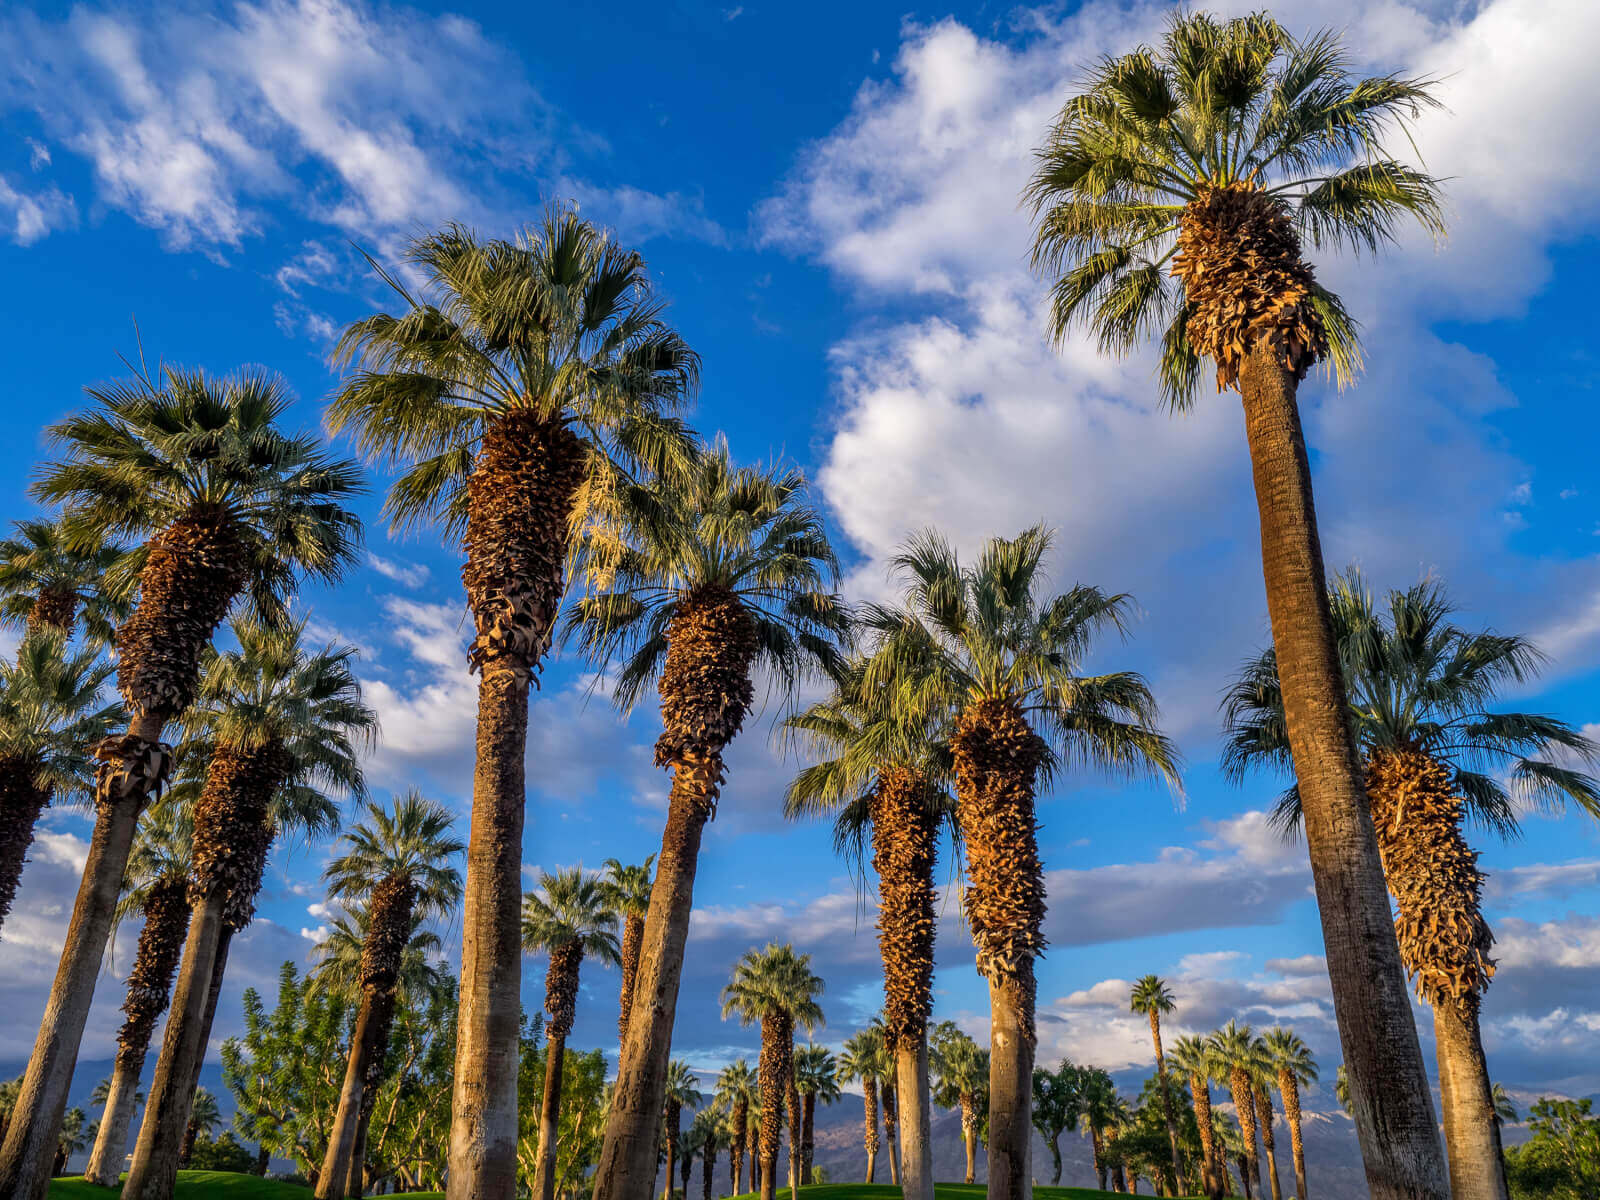 Find Drug and Alcohol Rehab in Garden Grove, California